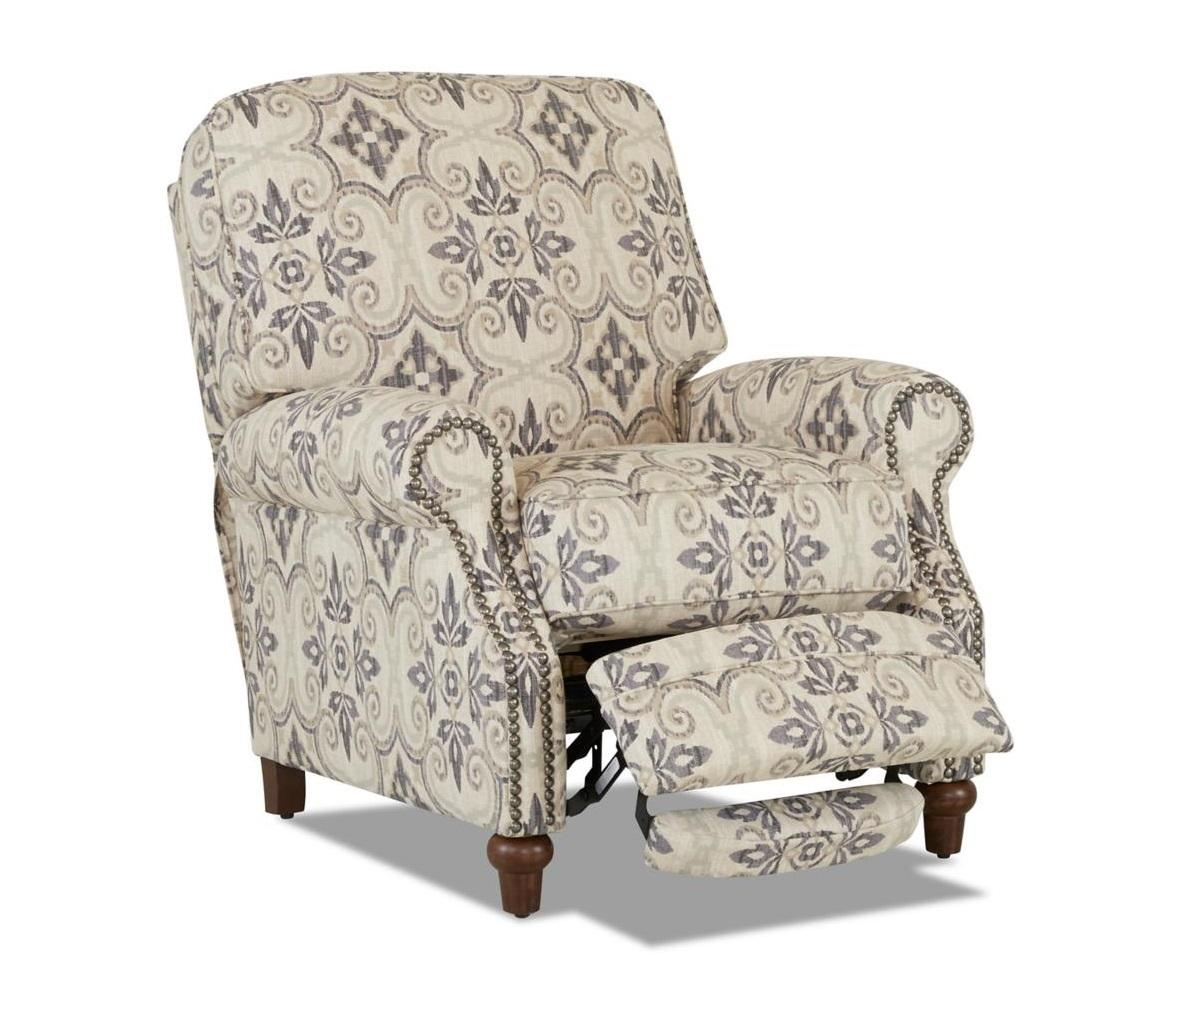 A picture containing seat, furniture, chair  Description automatically generated